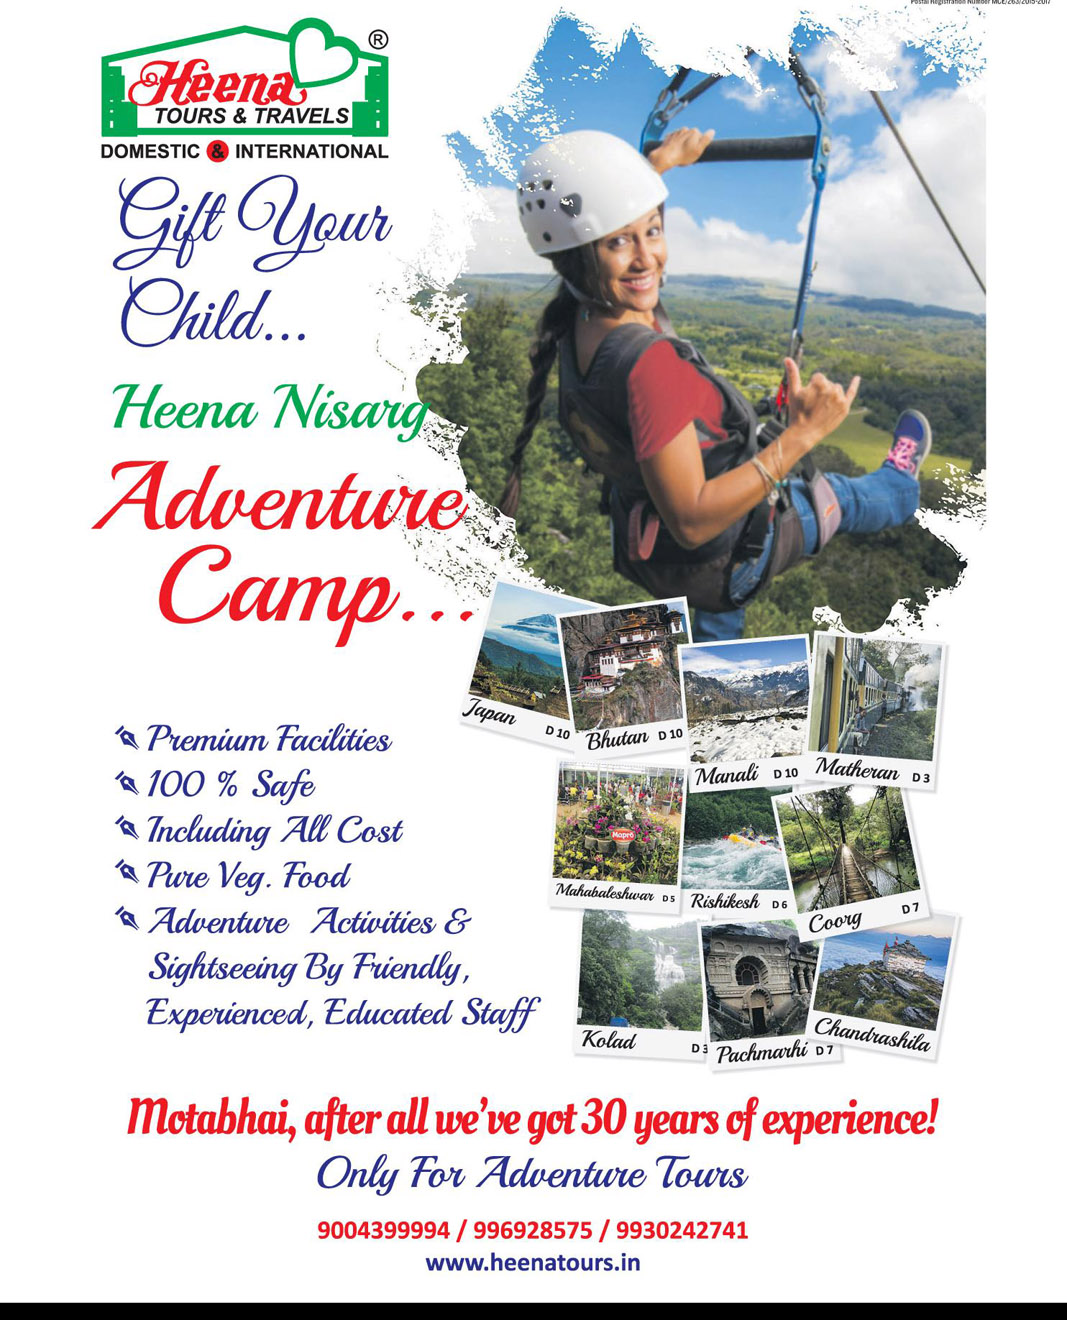 Heena Tours And Travels Heena Nisarg Adventure Camp Ad